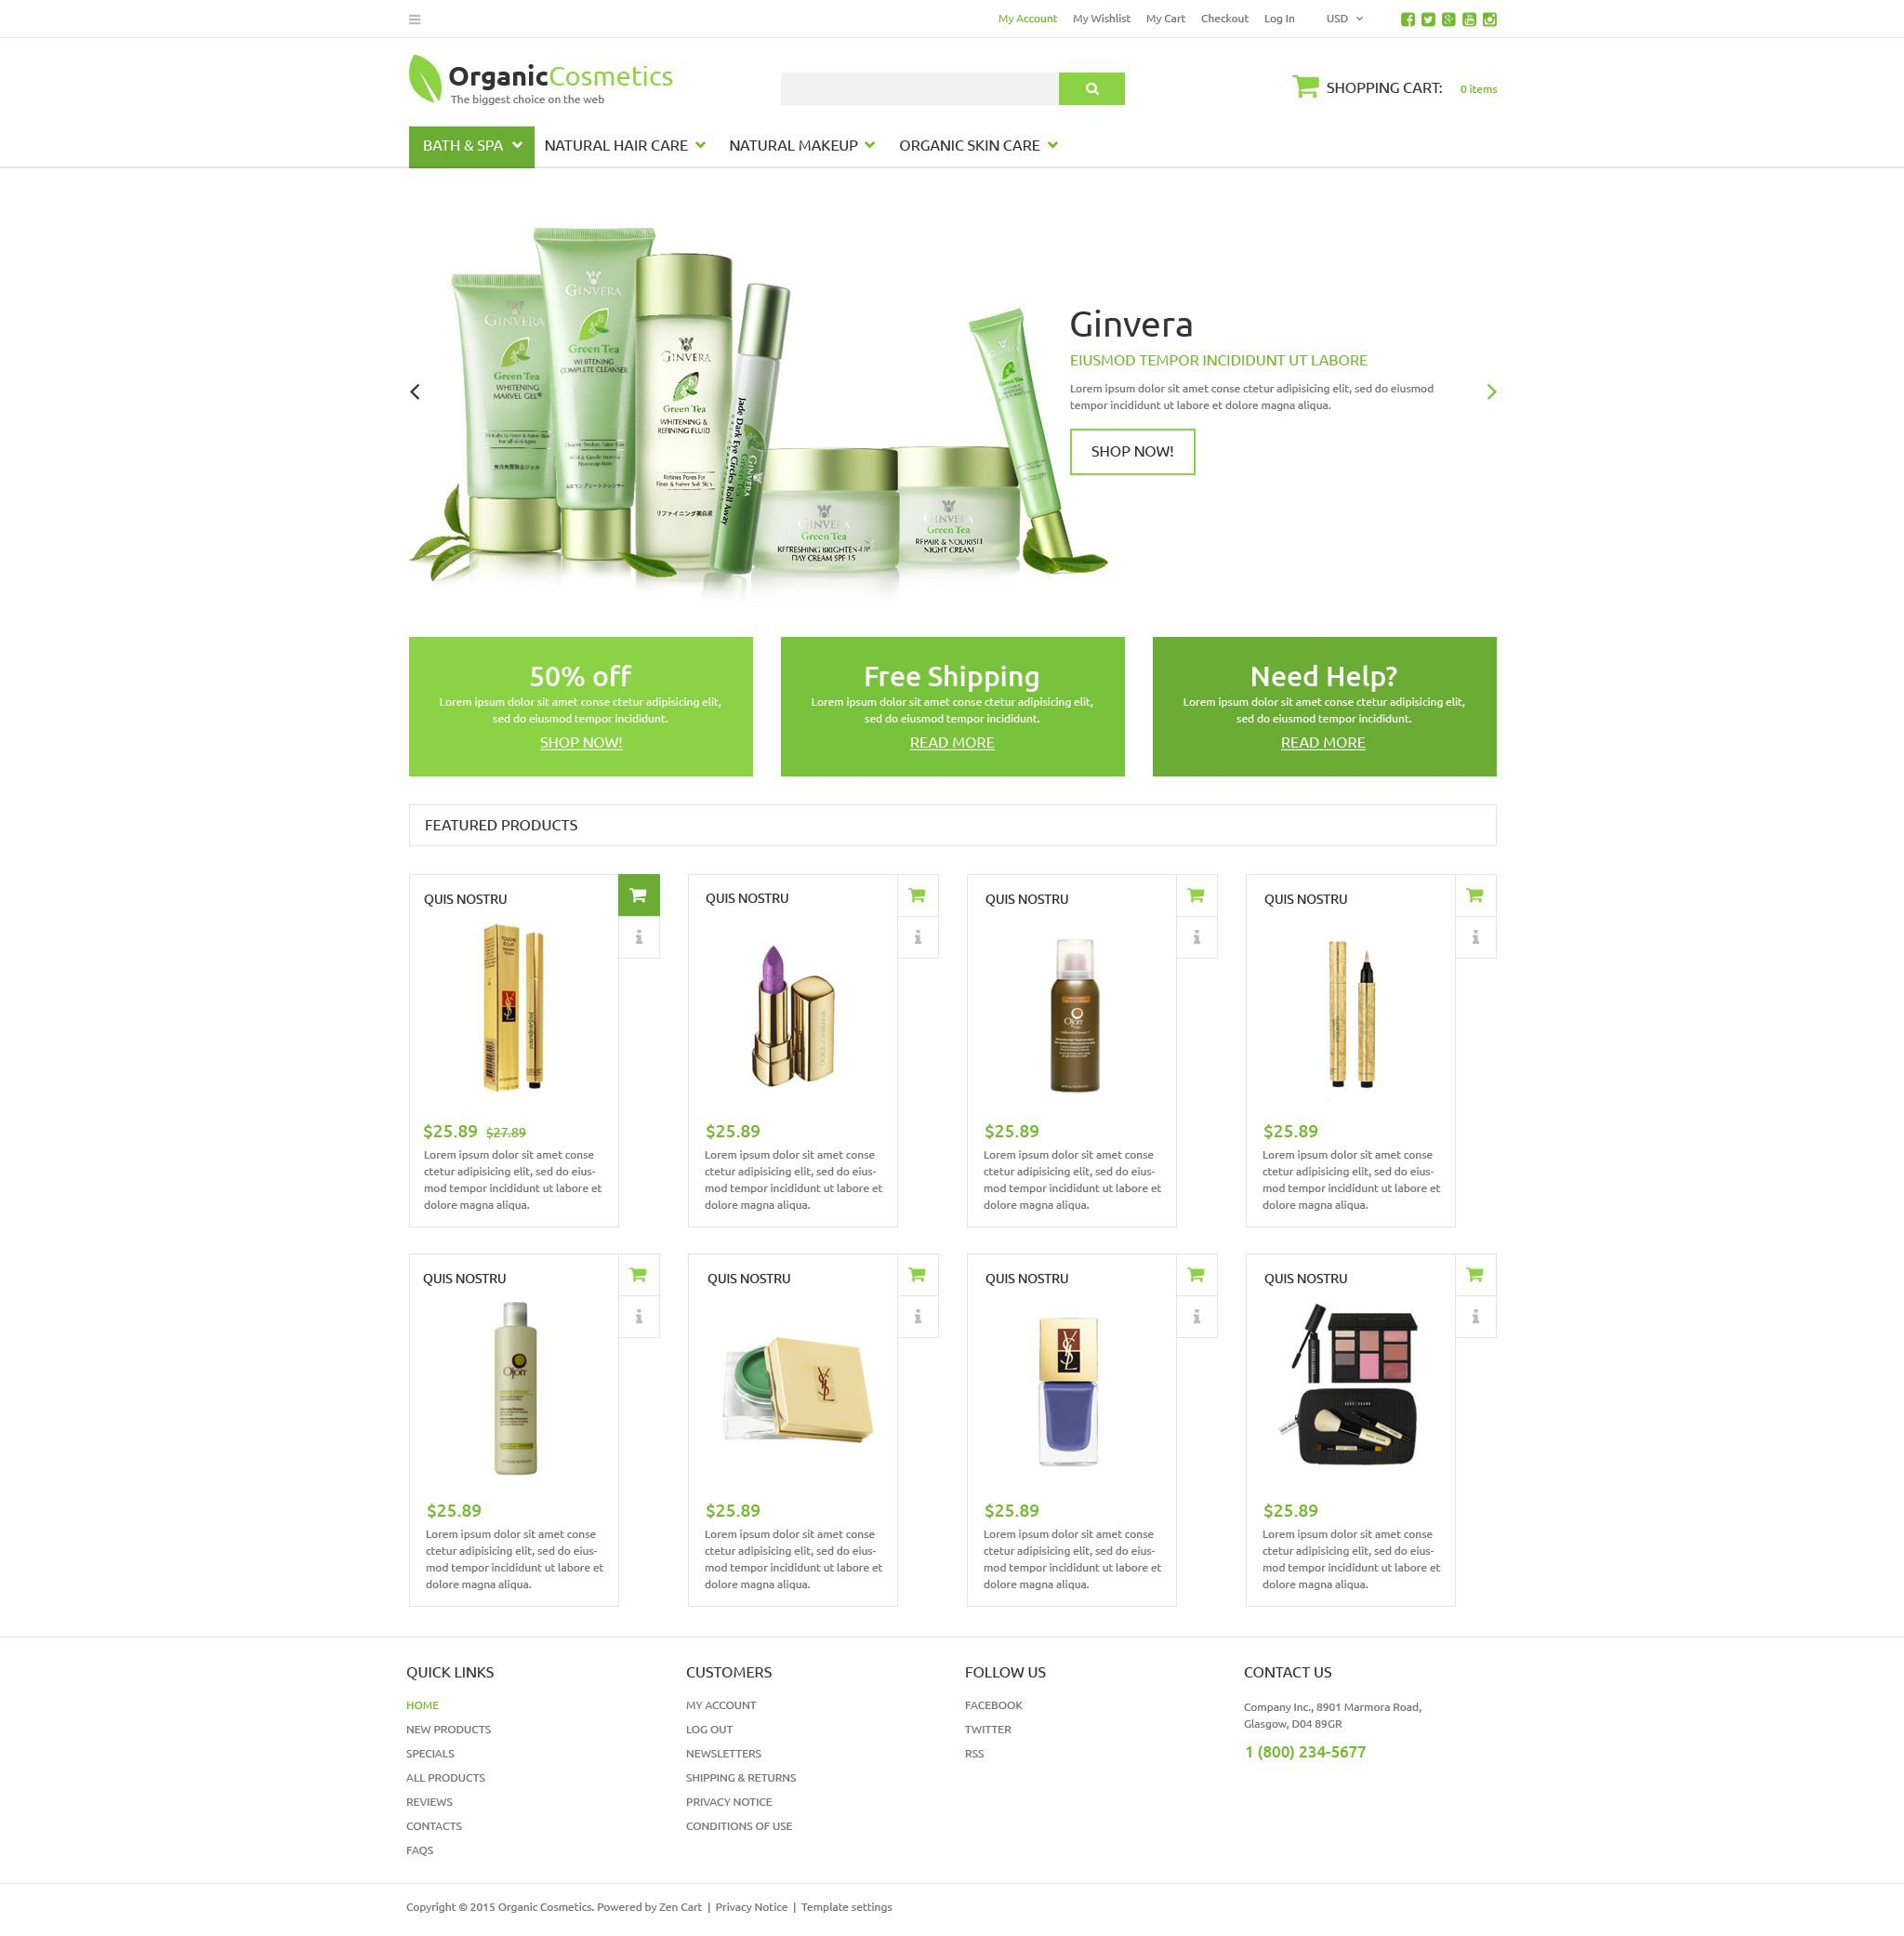 The Organic Cosmetics Store Zen Cart Design 53643, one of the best ZenCart templates of its kind (beauty, most popular), also known as organic cosmetics store ZenCart template, beauty ZenCart template, fashion ZenCart template, health care ZenCart template, women solution ZenCart template, service ZenCart template, catalogue ZenCart template, product ZenCart template, gift ZenCart template, skincare ZenCart template, hair care ZenCart template, style ZenCart template, cream ZenCart template, natural ZenCart template, rejuvenation ZenCart template, damping ZenCart template, lifting ZenCart template, peeling ZenCart template, specials ZenCart template, lipstick ZenCart template, mascara ZenCart template, nail ZenCart template, polish ZenCart template, shampoo ZenCart template, body ZenCart template, milk ZenCart template, lotion ZenCart template, hand ZenCart template, client and related with organic cosmetics store, beauty, fashion, health care, women solution, service, catalogue, product, gift, skincare, hair care, style, cream, natural, rejuvenation, damping, lifting, peeling, specials, lipstick, mascara, nail, polish, shampoo, body, milk, lotion, hand, client, etc.